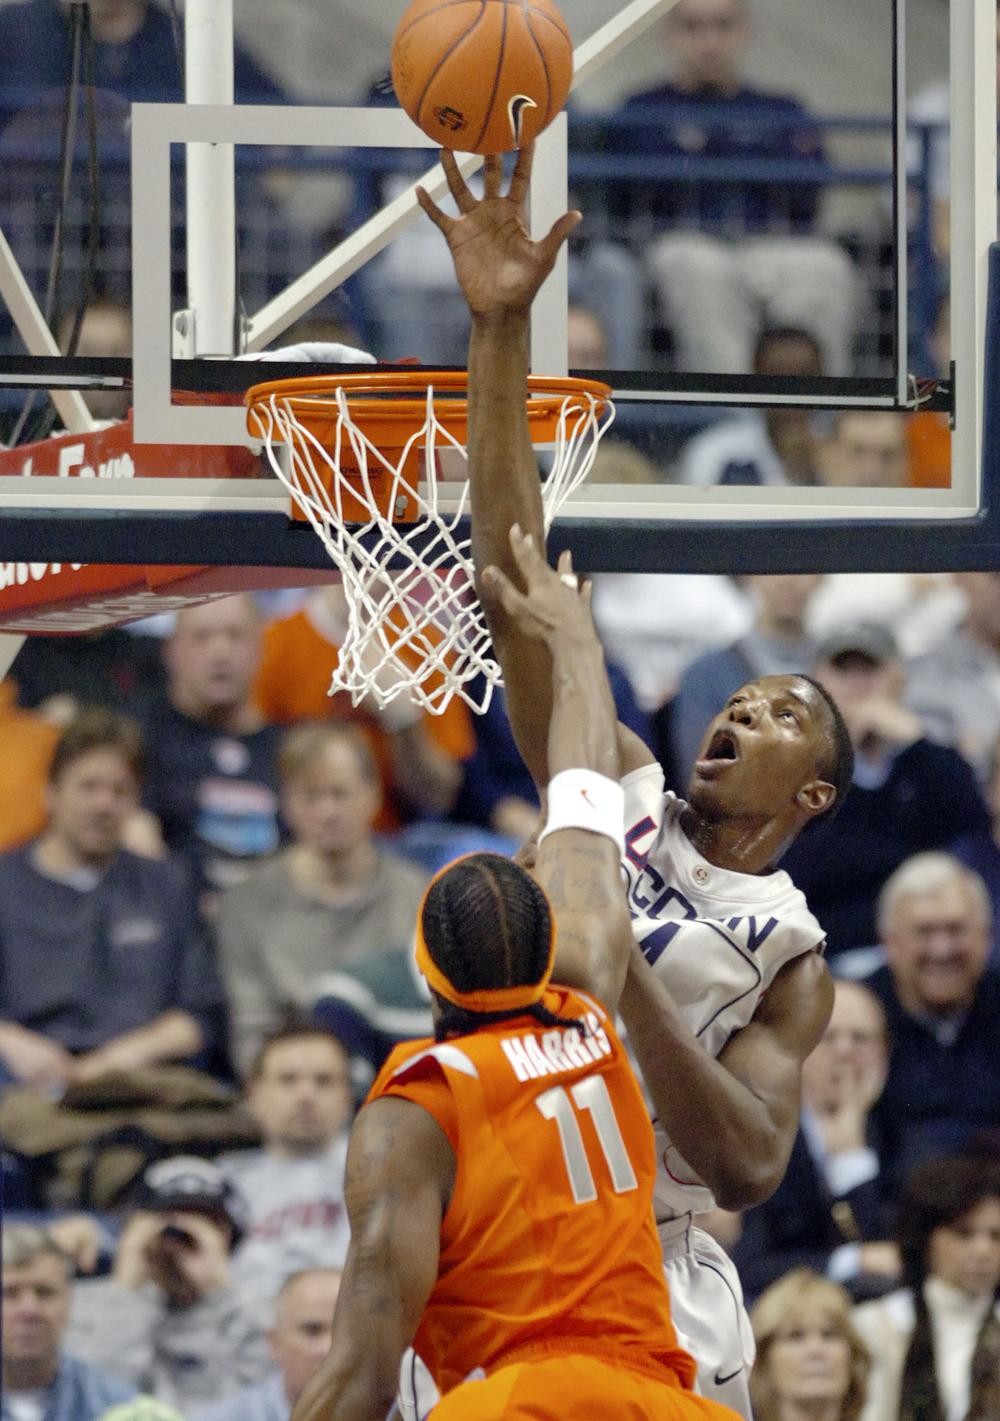 Connecticut's Hasheem Thabeet, right, blocks the shot of Syracuse's Paul Harris during the NCAA college basketball game in Conn., on Feb. 11, 2009. (AP)